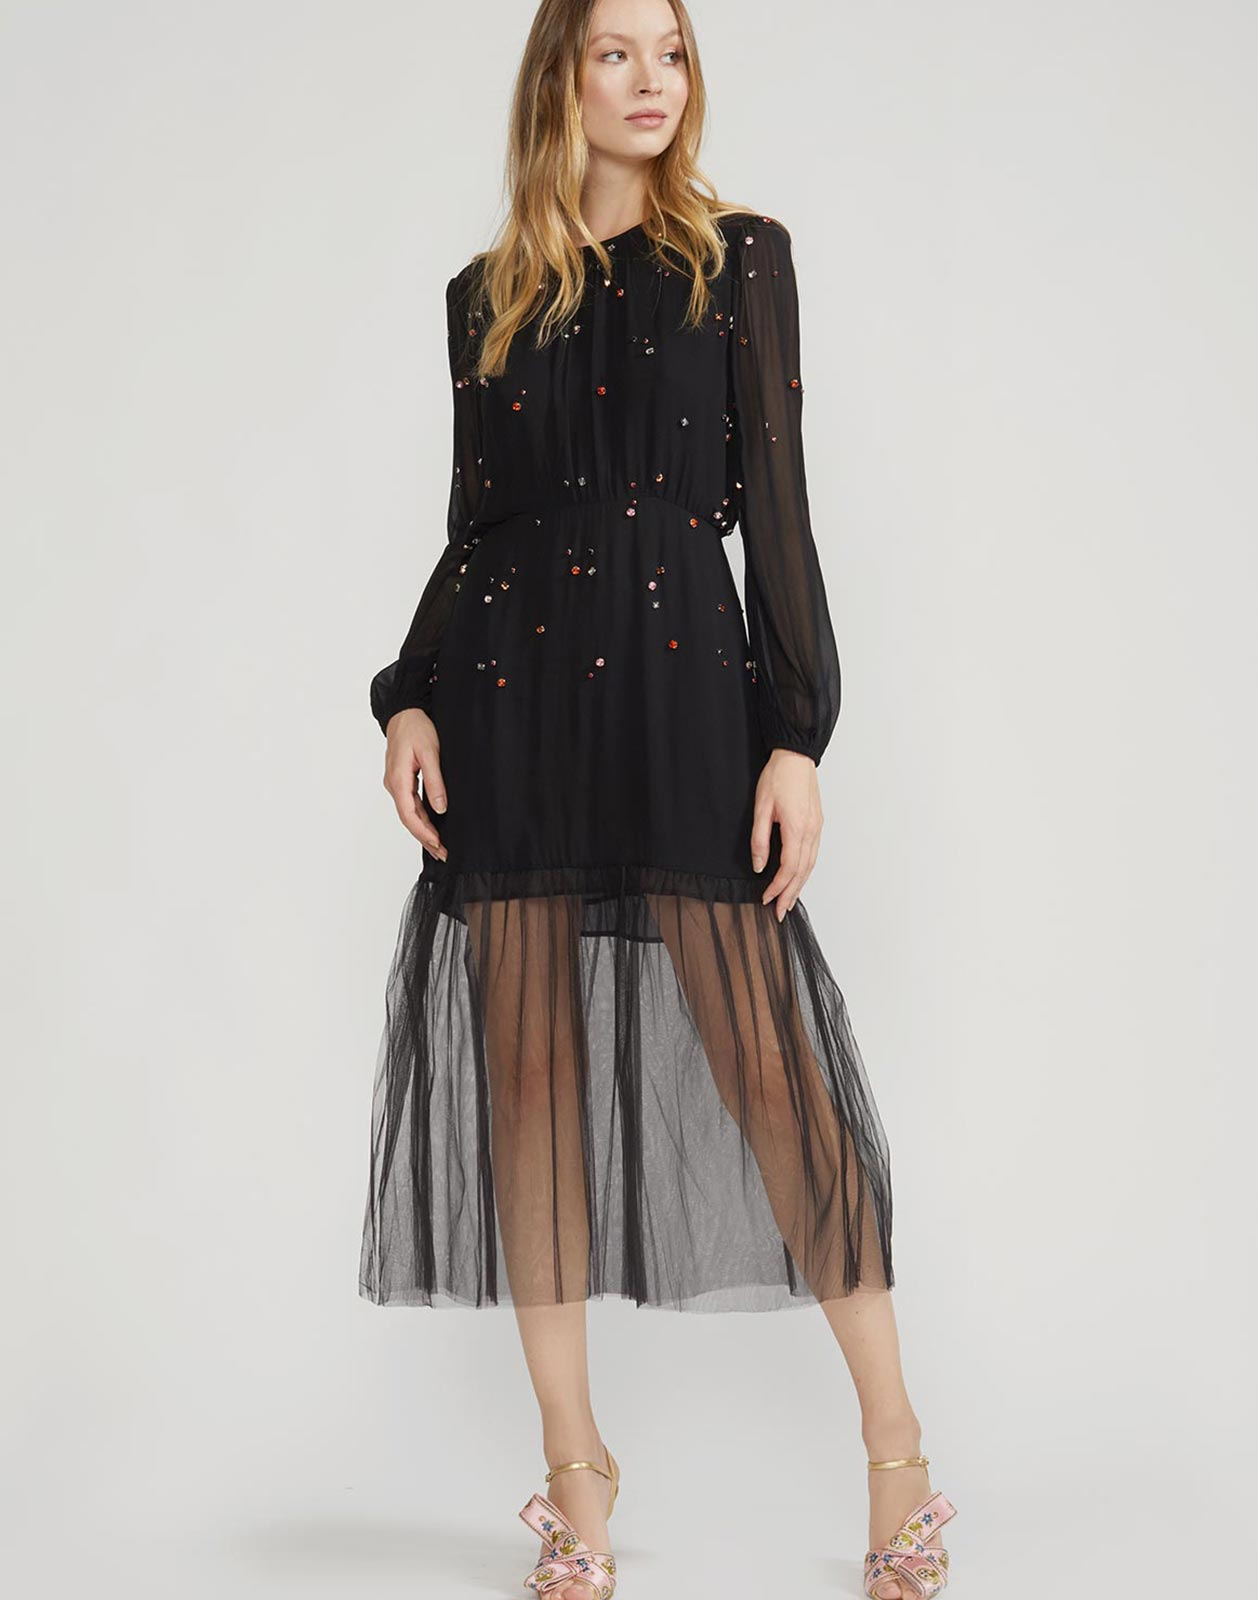 Full view of the Rhinestone embellished dress with sheer accents and tulle skirt